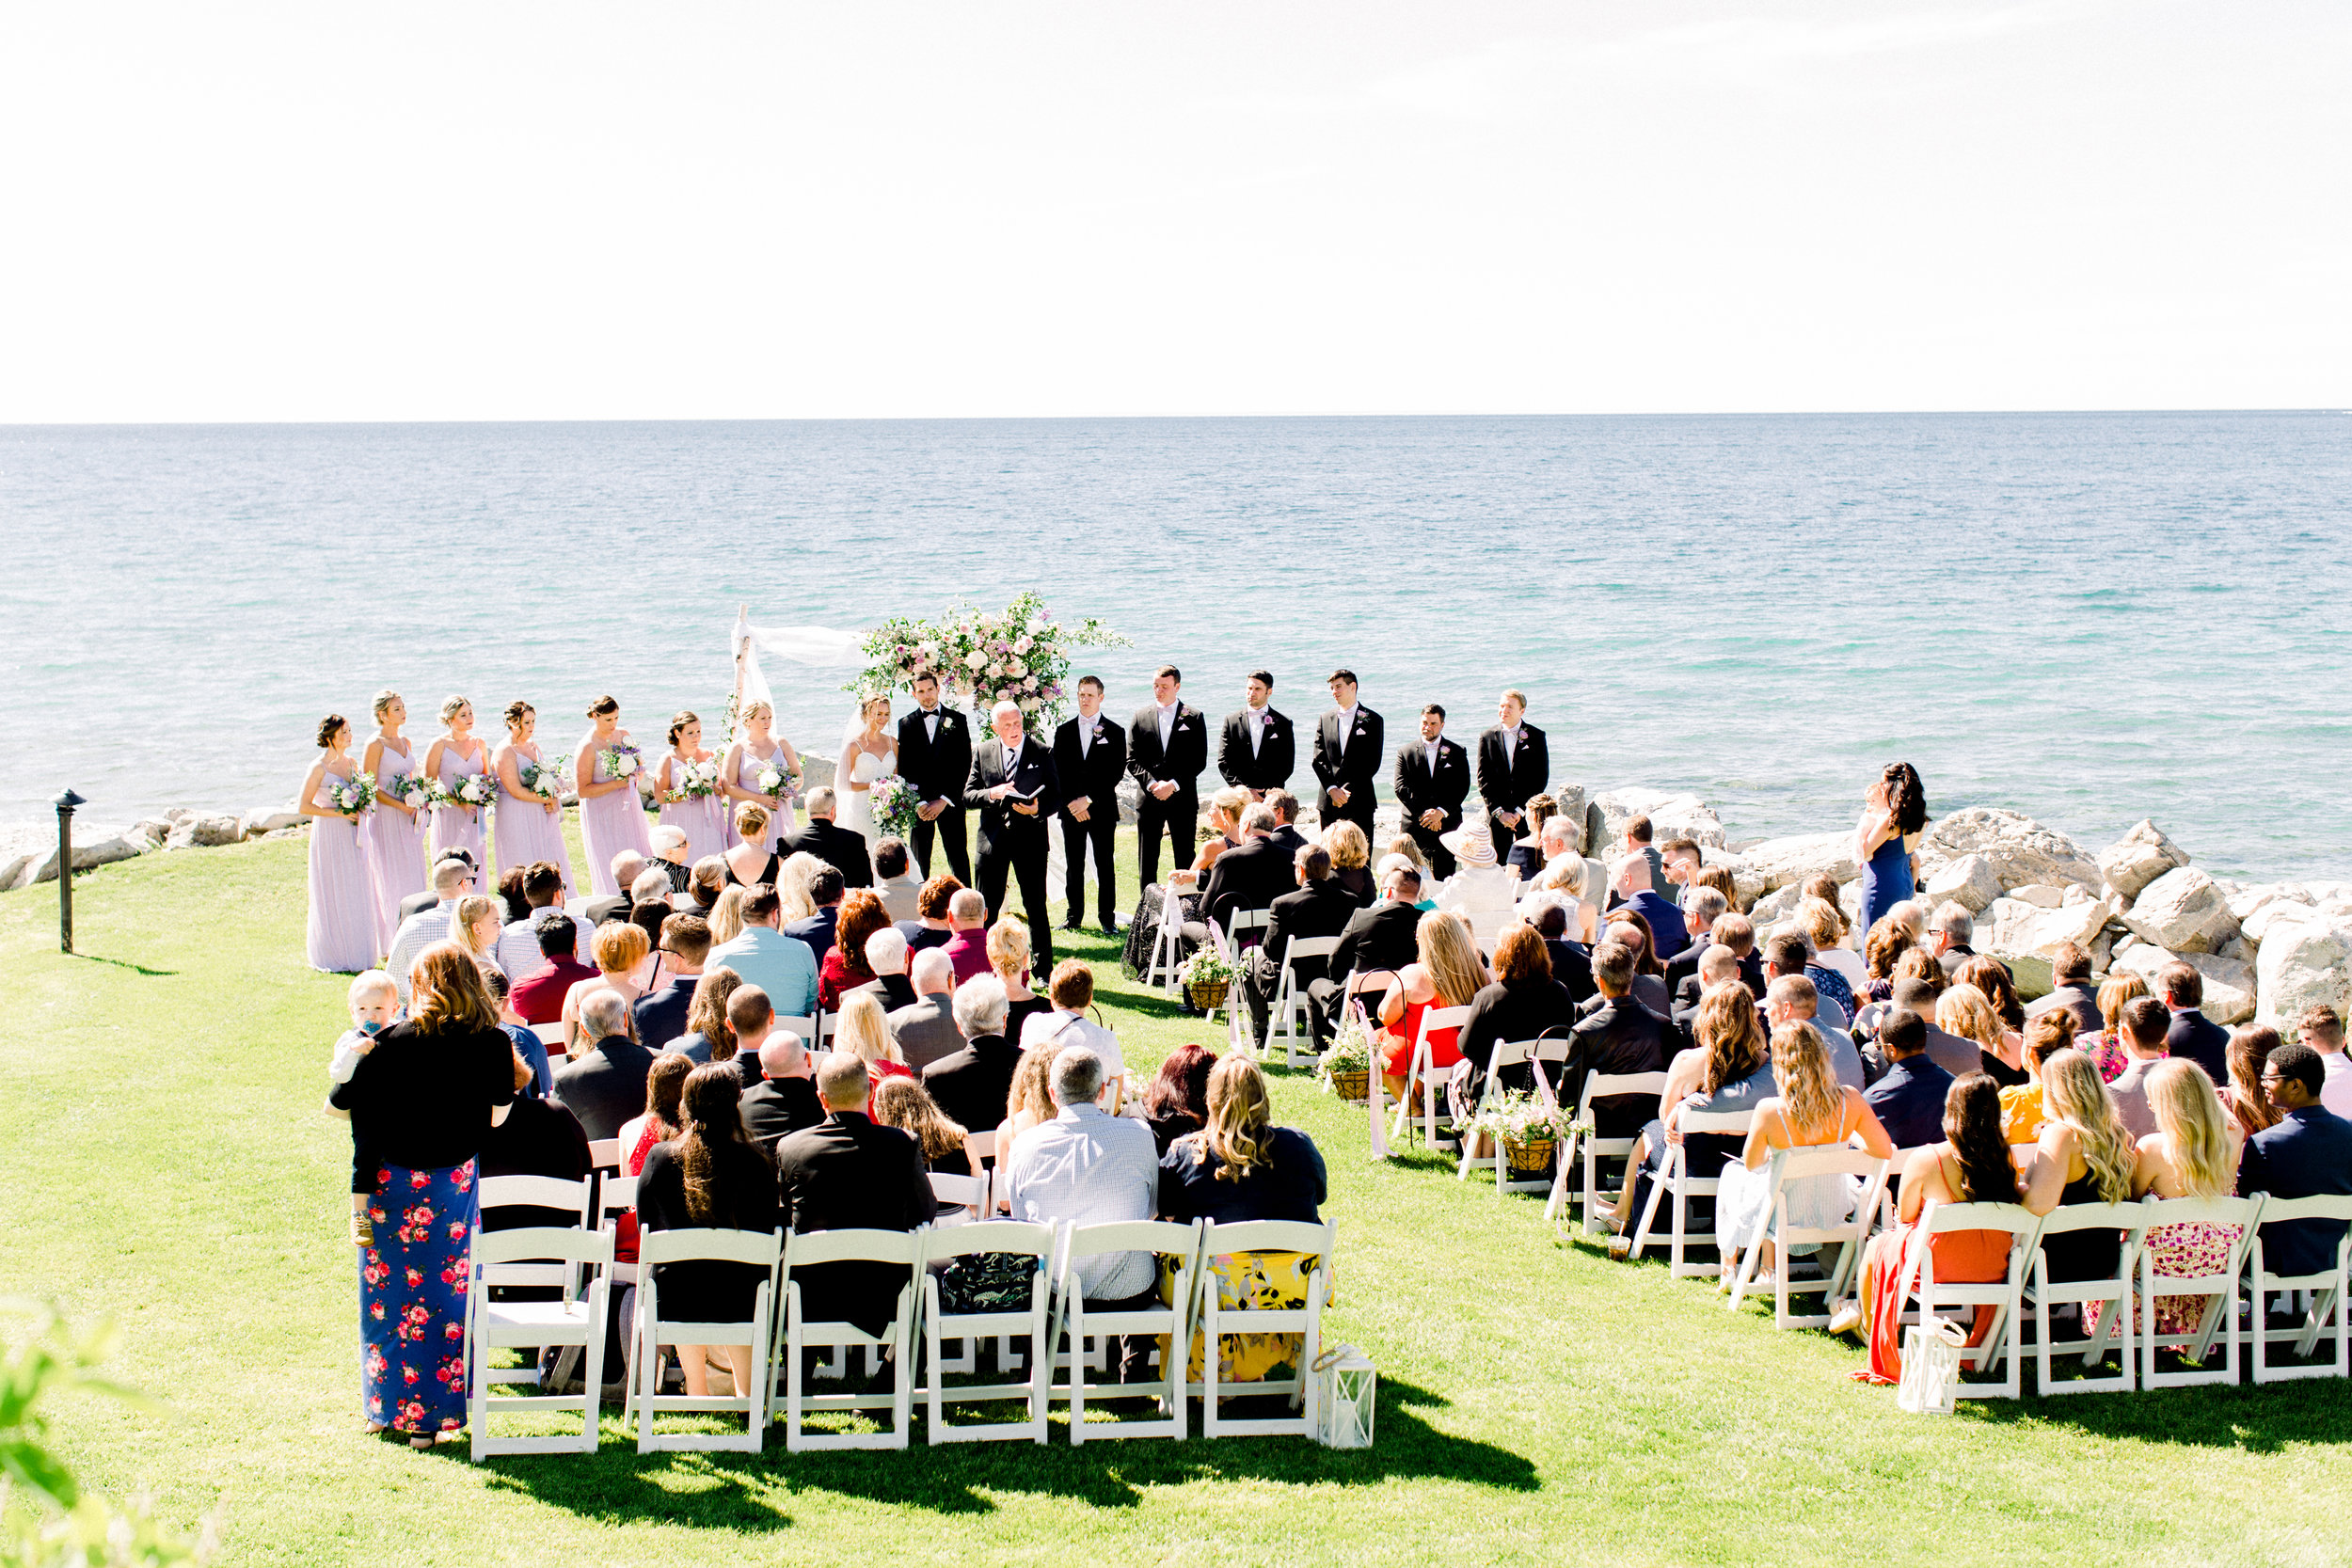 Noss+Wedding+Ceremony-143.jpg